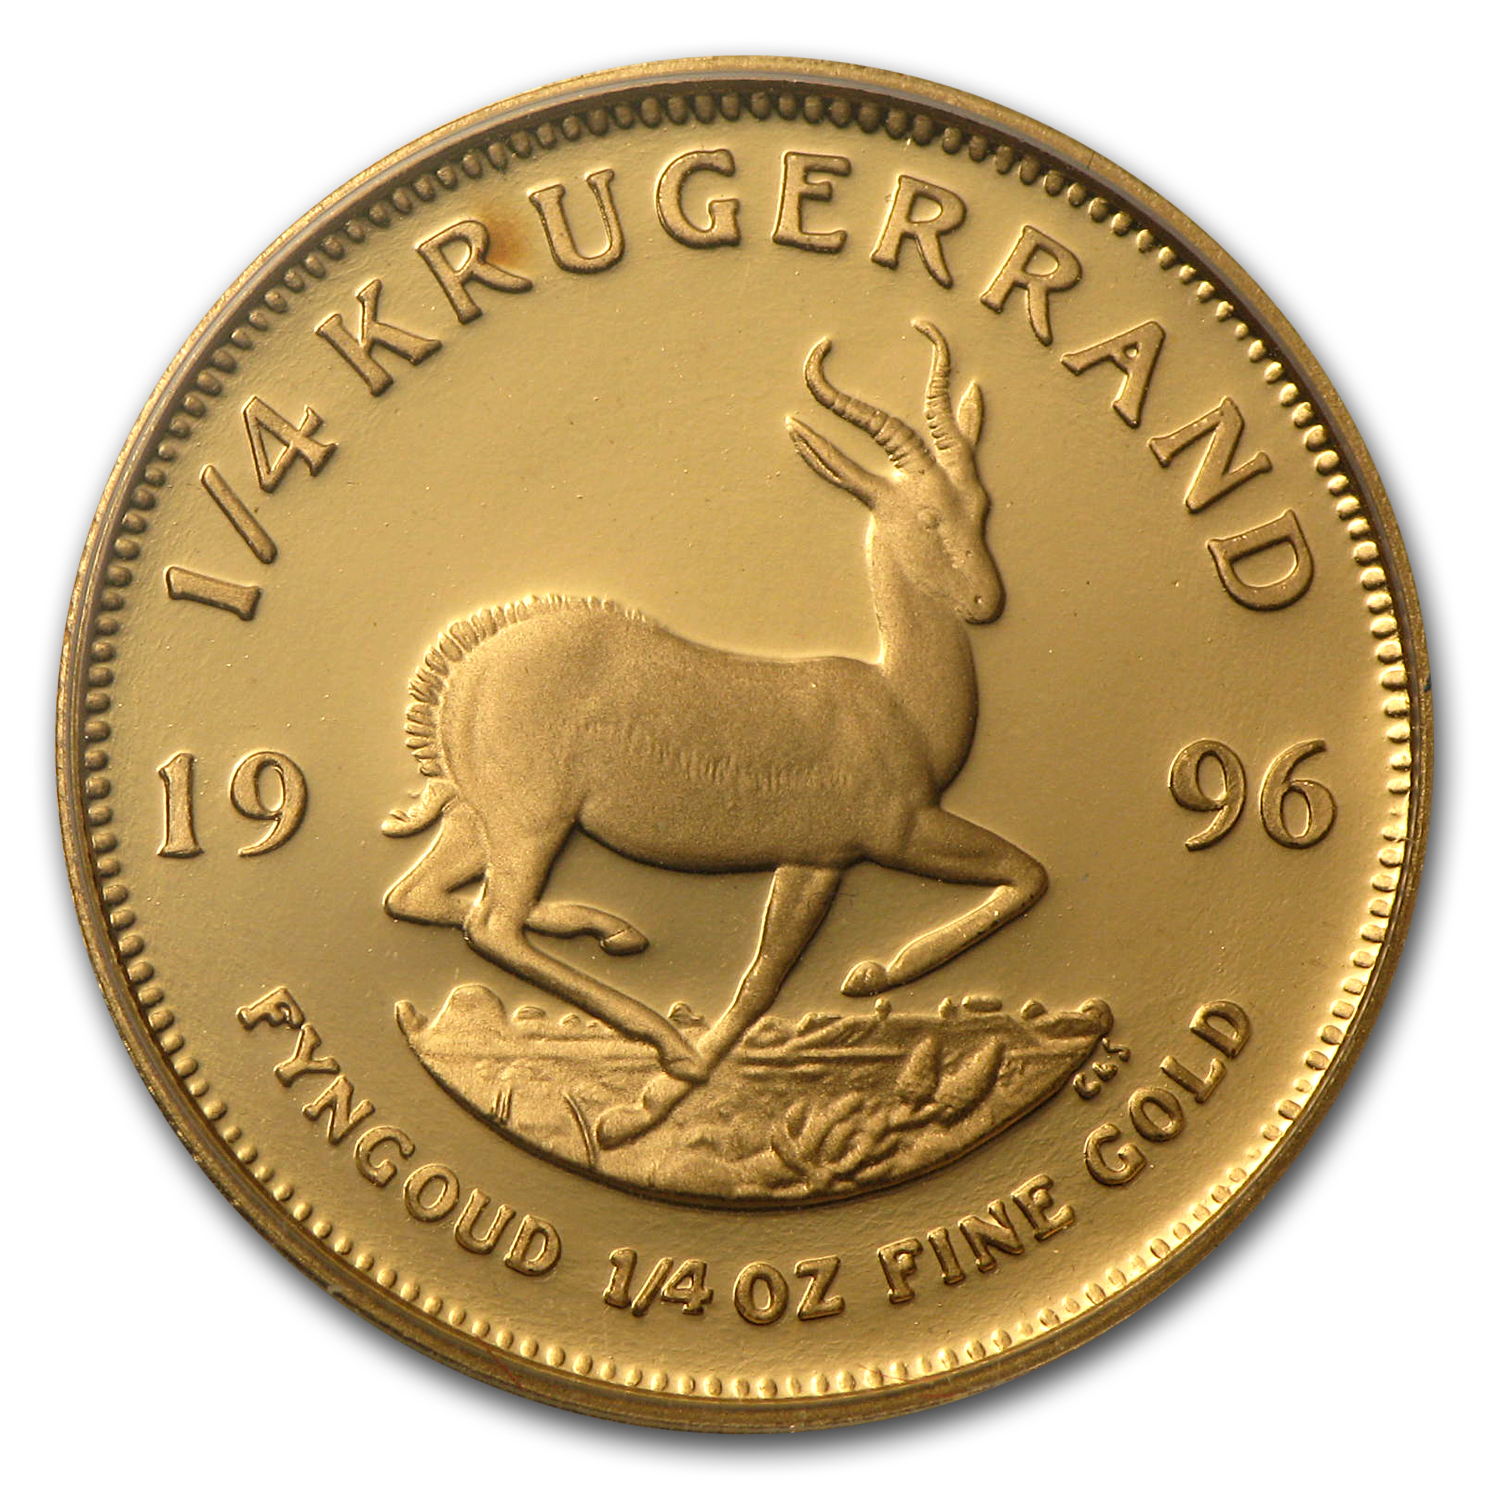 1996 South Africa 1/4 oz Proof Gold Krugerrand